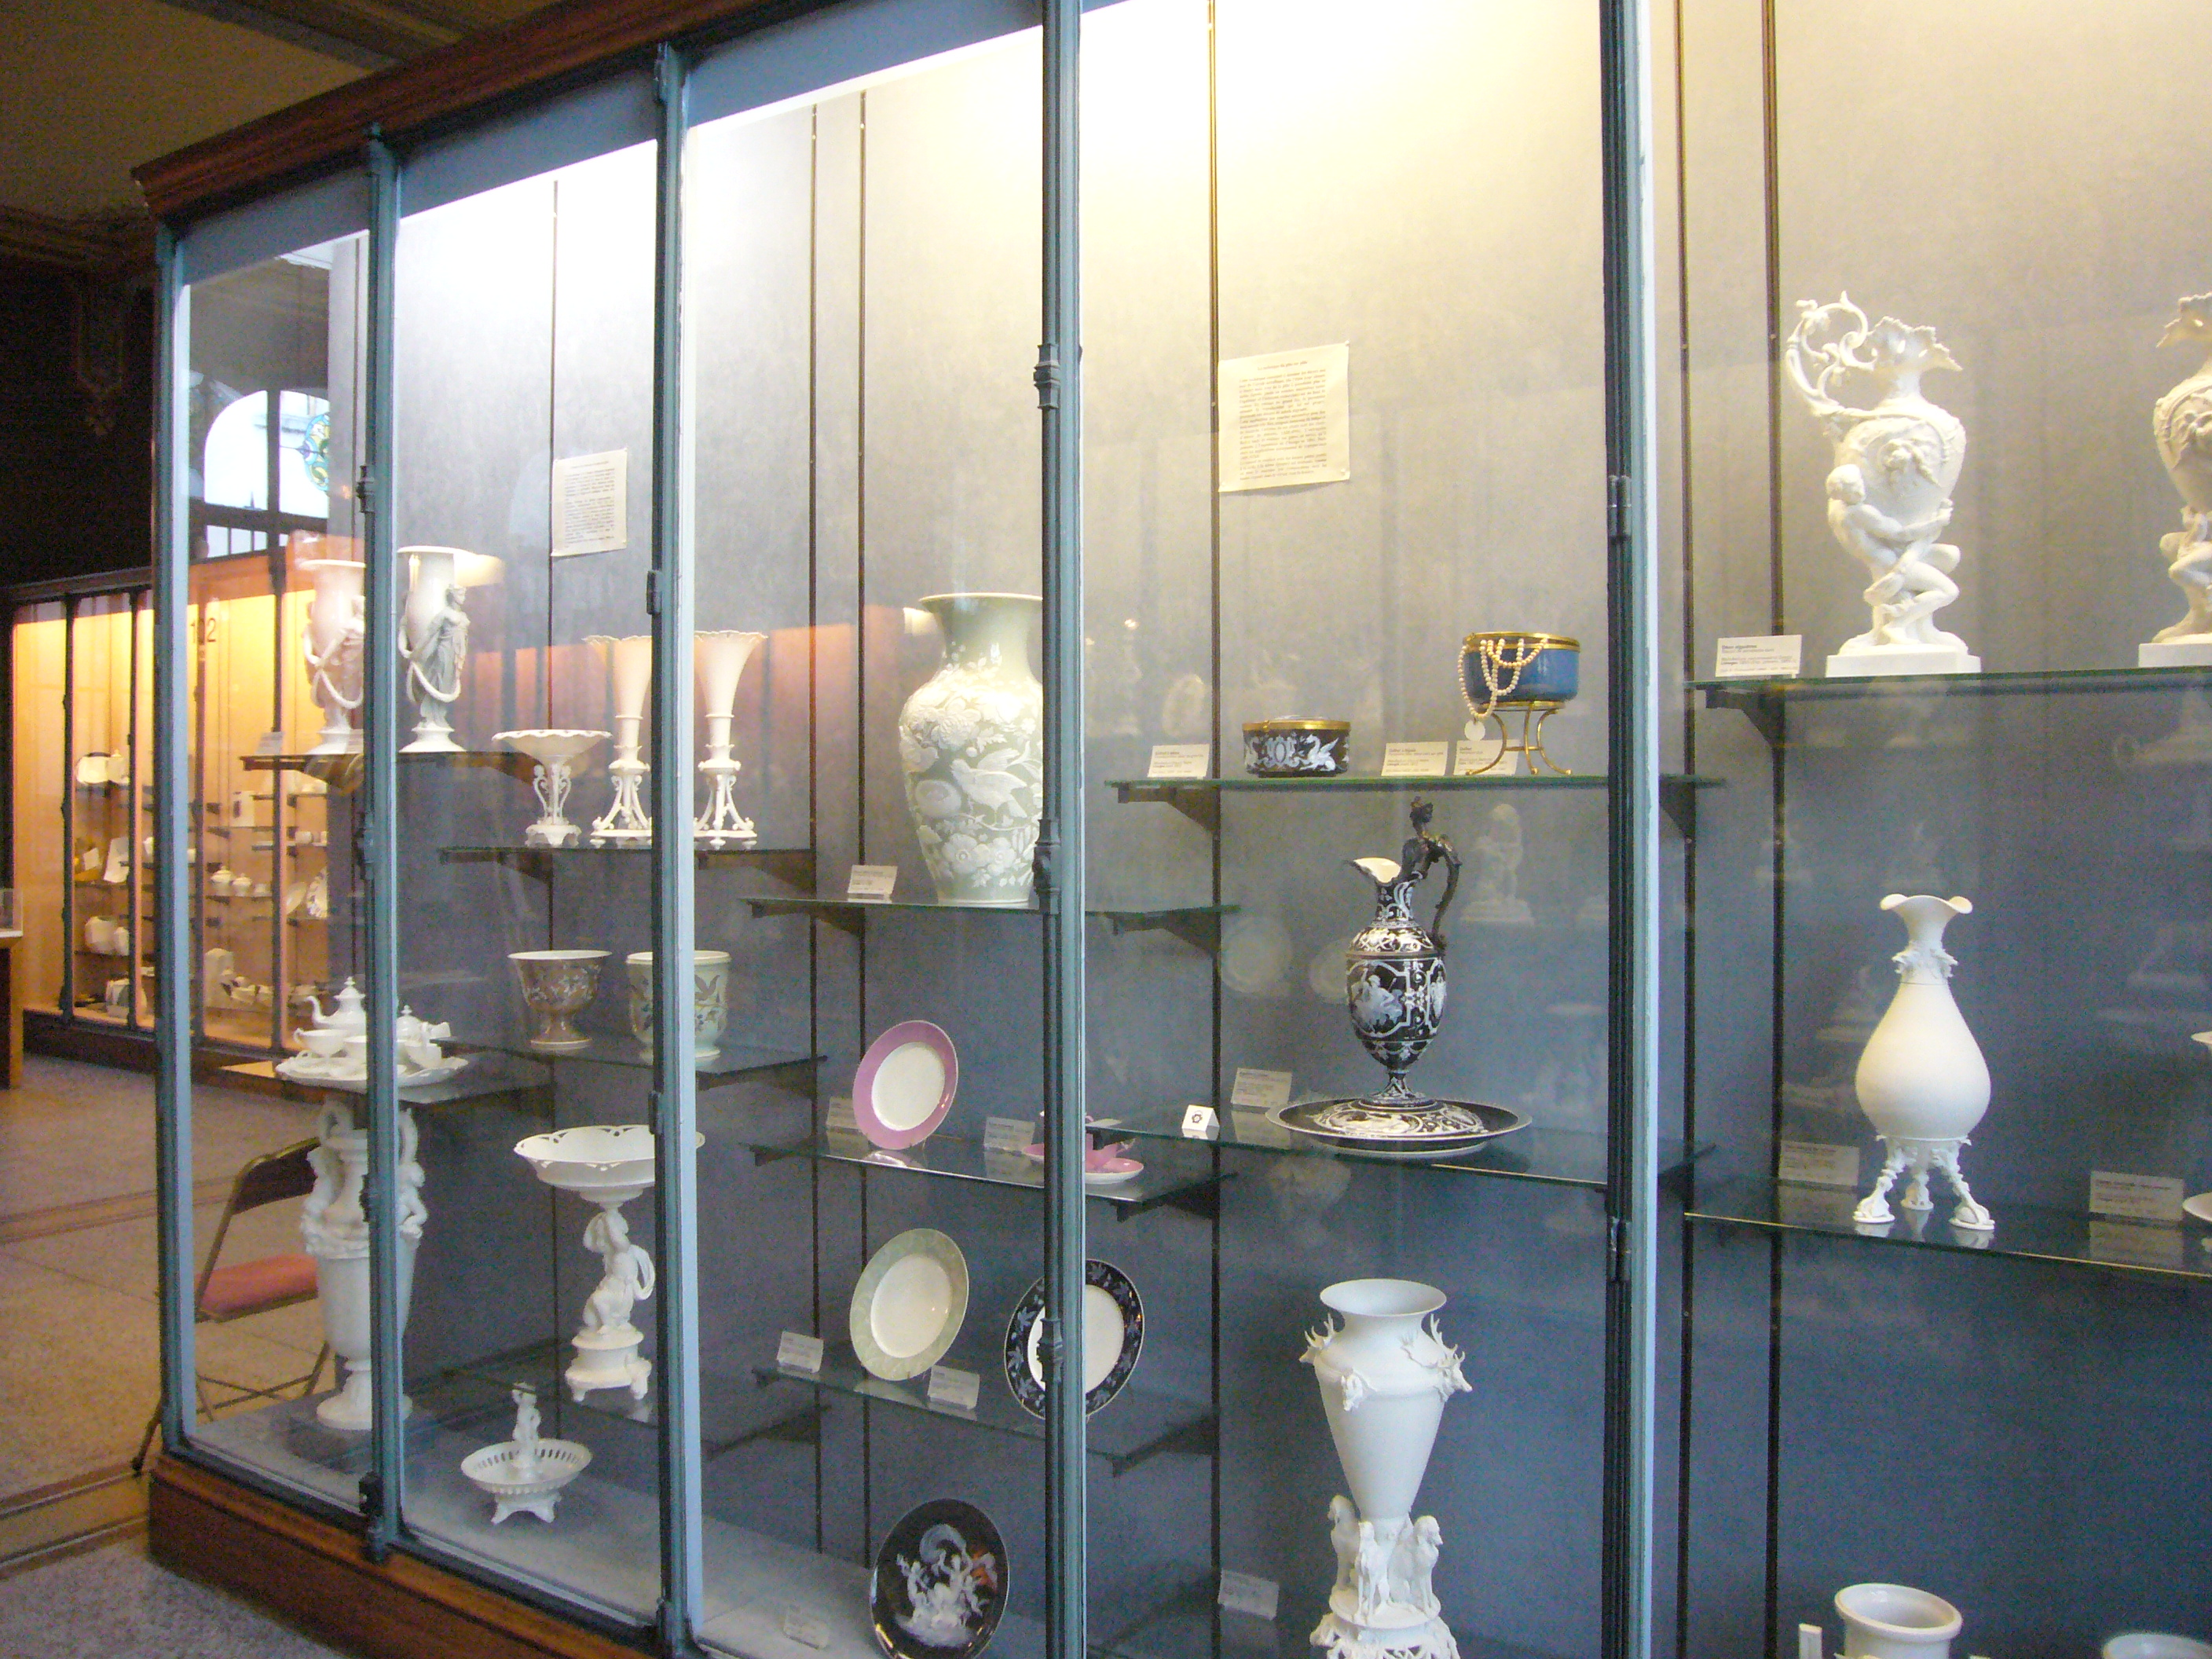 File mus e adrien dubouch collections jpg wikimedia commons - Musee adrien dubouche ...